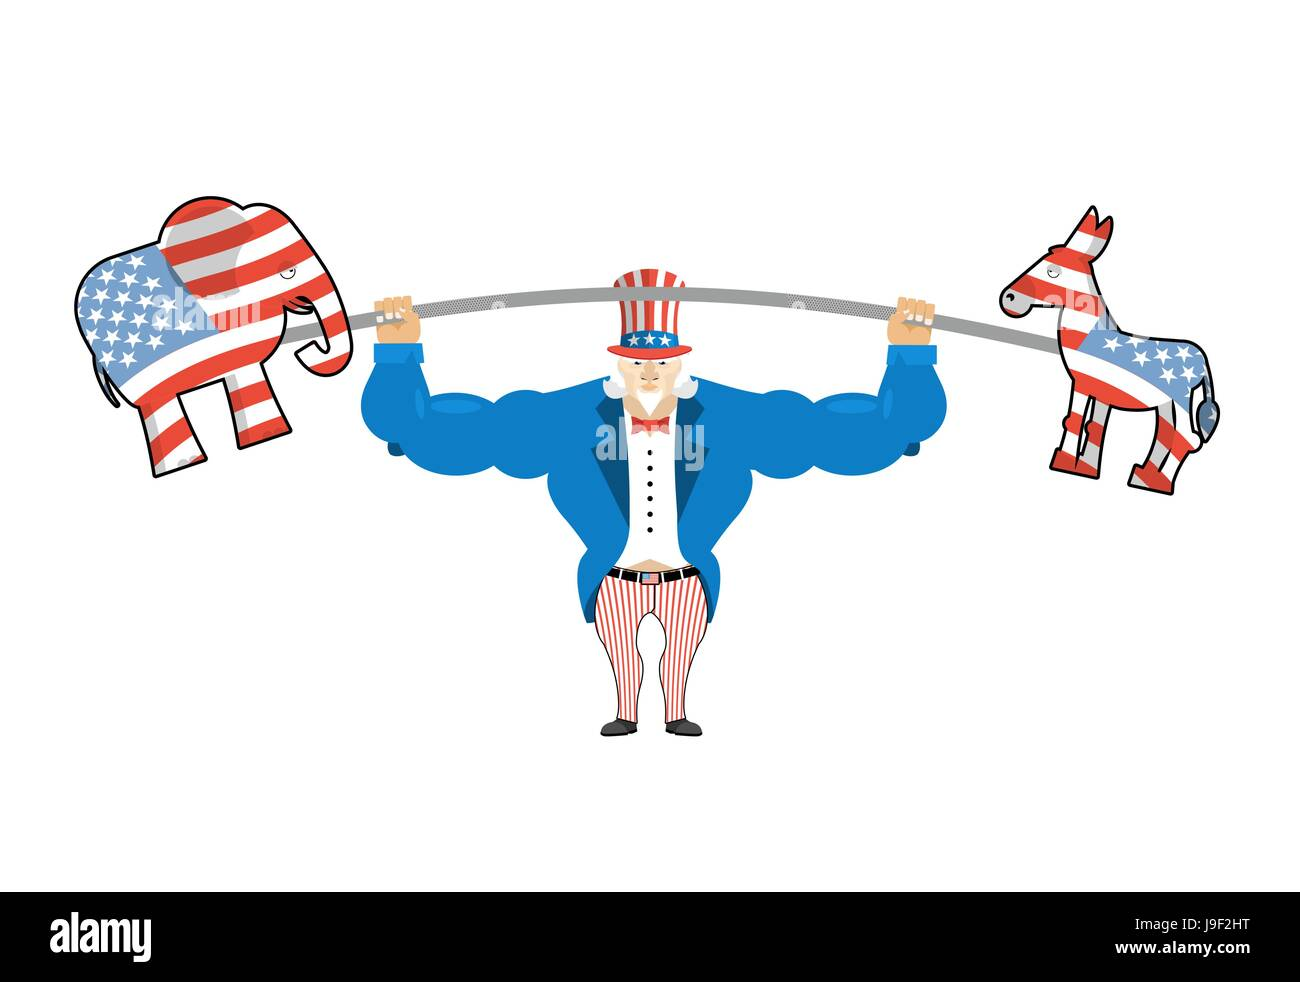 uncle sam and donkey and elephant democratic donkey and republican